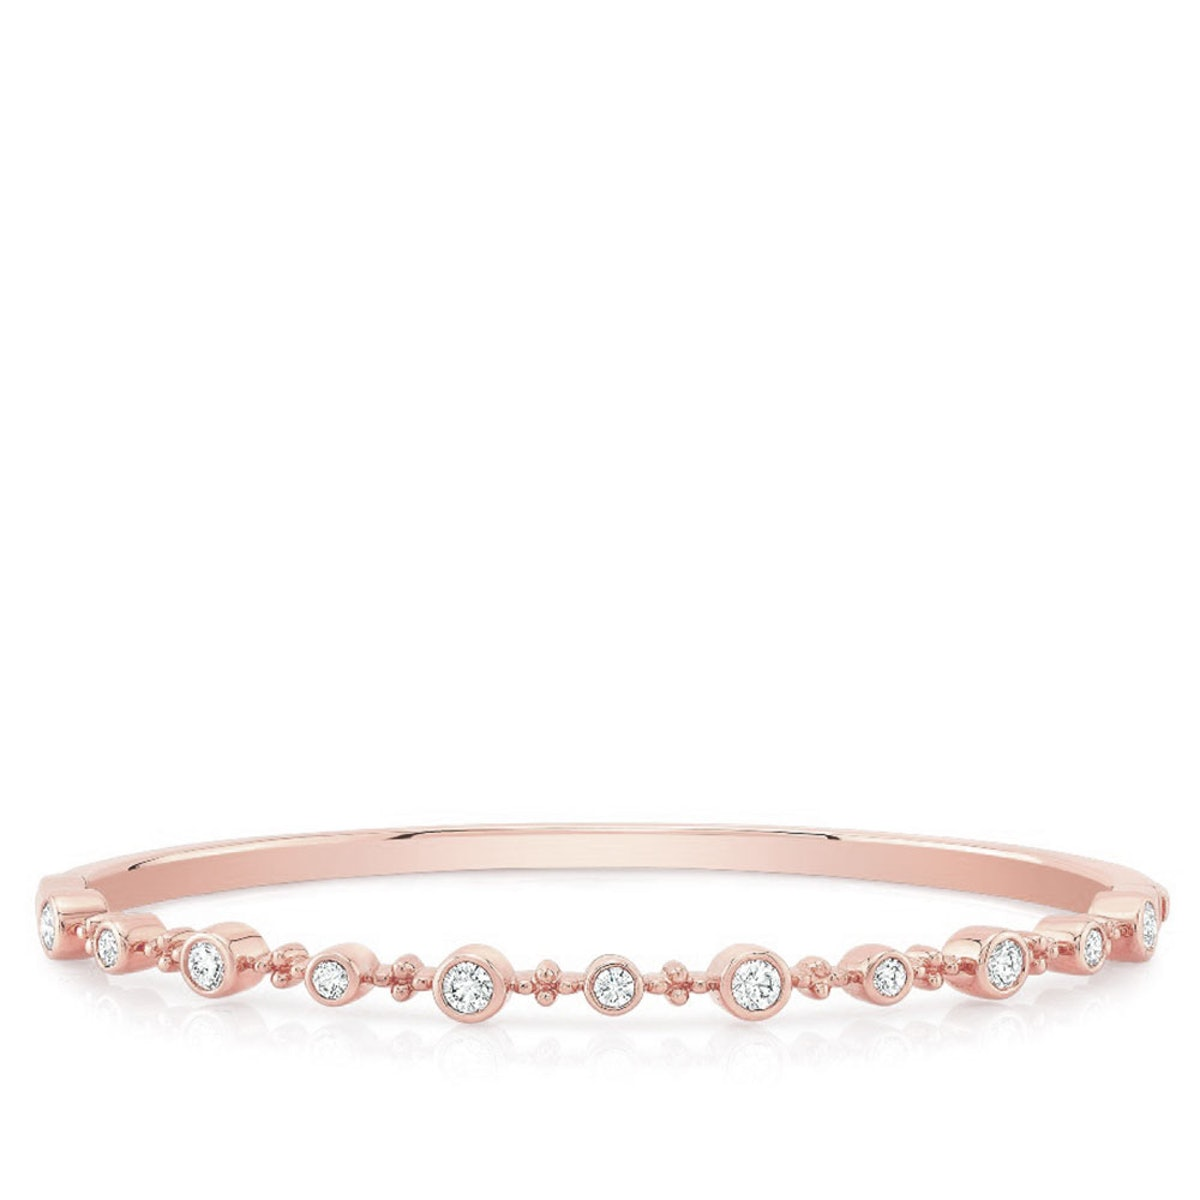 Forevermark Tribute™ Collection Diamond Bangle in 18K Rose Gold